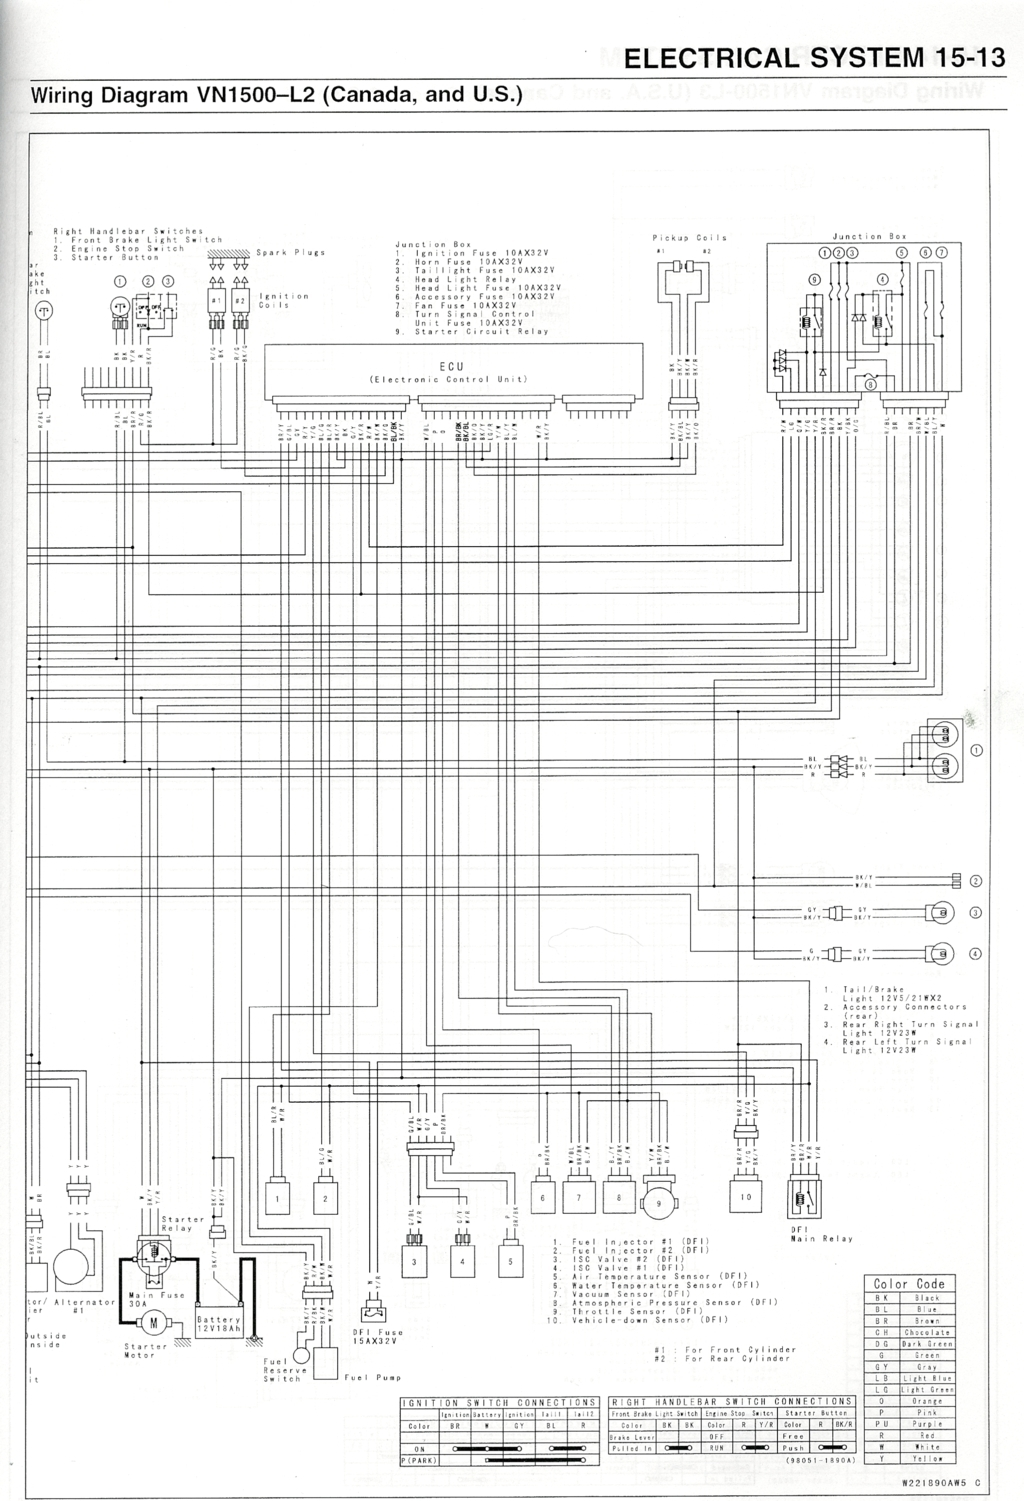 nomad_wiring_diagram_p2 vulcan wiring diagrams gadget's fixit page  at mifinder.co